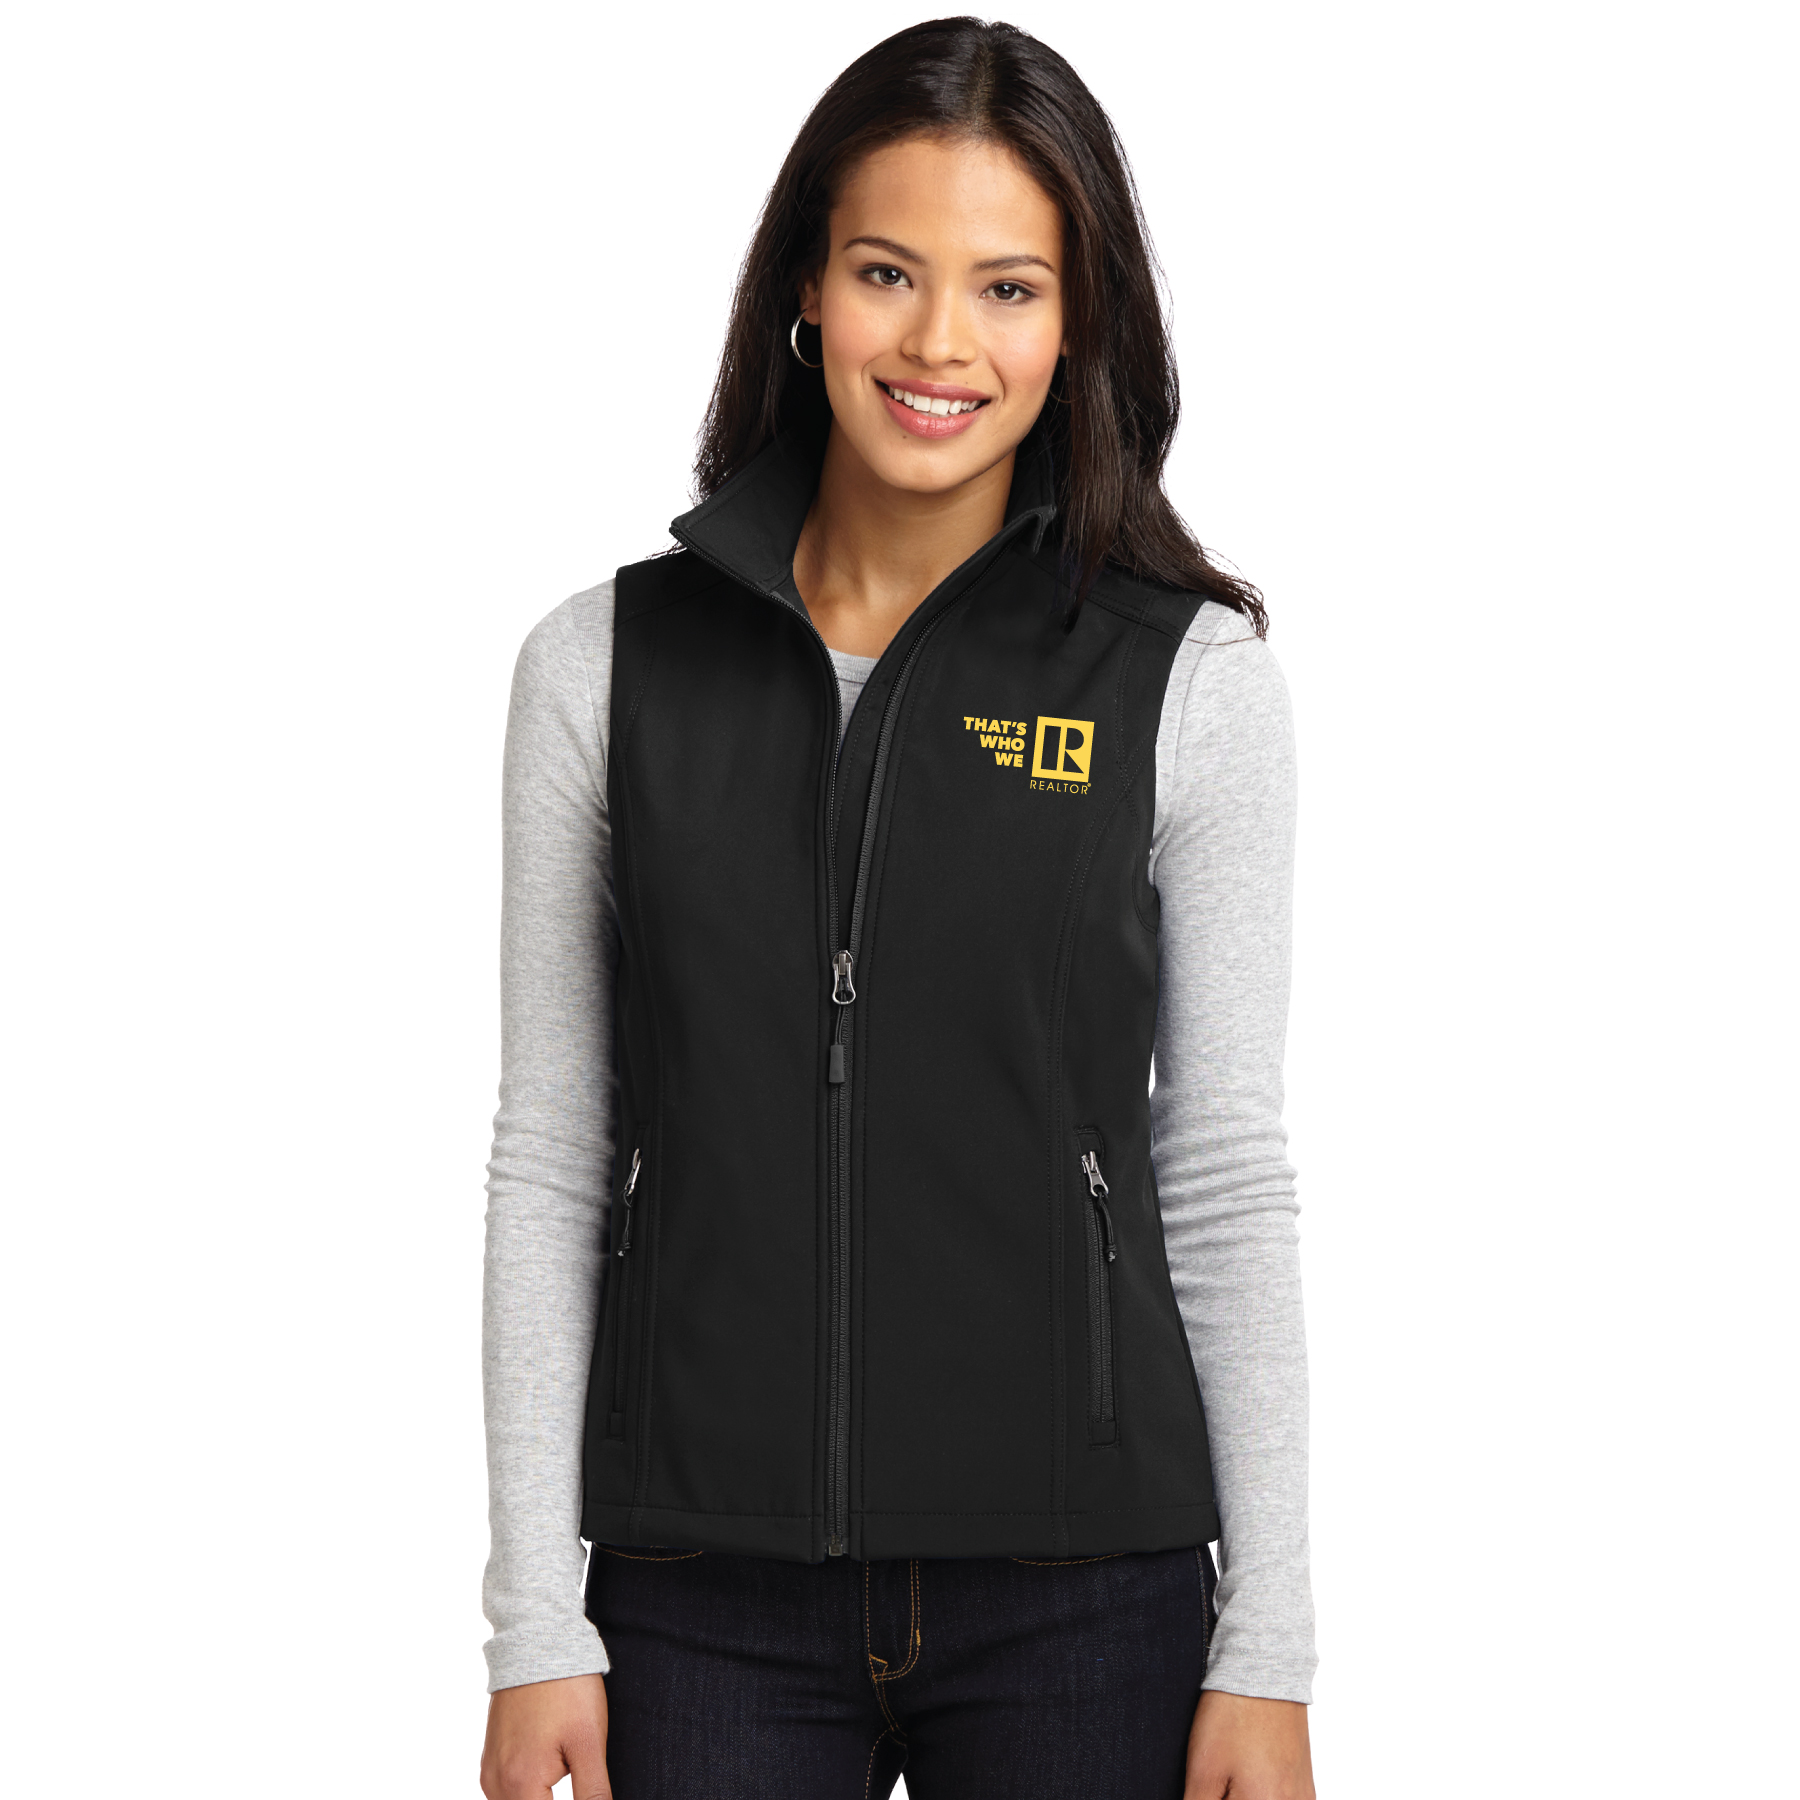 """Thats Who We R"" Ladies Core Soft Shell Vest twwr,ThatsWhoWeR,Thats,TWWR,ThatWho,ThatsWho,Twwr,Thats,Whos,We,Ares,Twwr,Thats,Whos,Wes,Ares,ladies, softs, shells, vests"